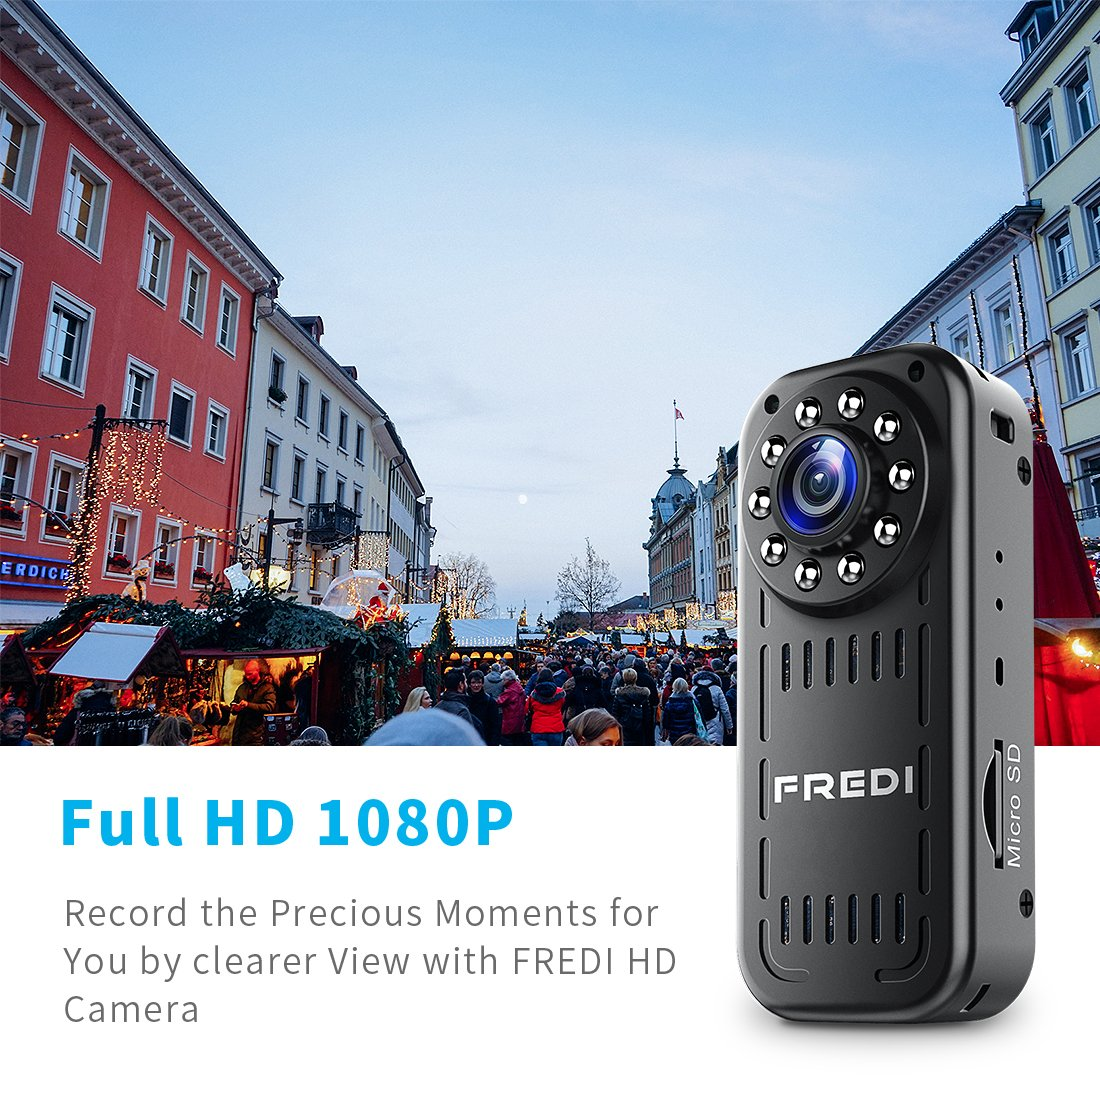 FREDI Hidden Camera 1080p HD Mini WiFi Camera spy Camera Wireless Camera  for iPhone/Android Phone/iPad Remote View with Motion Detection(Update